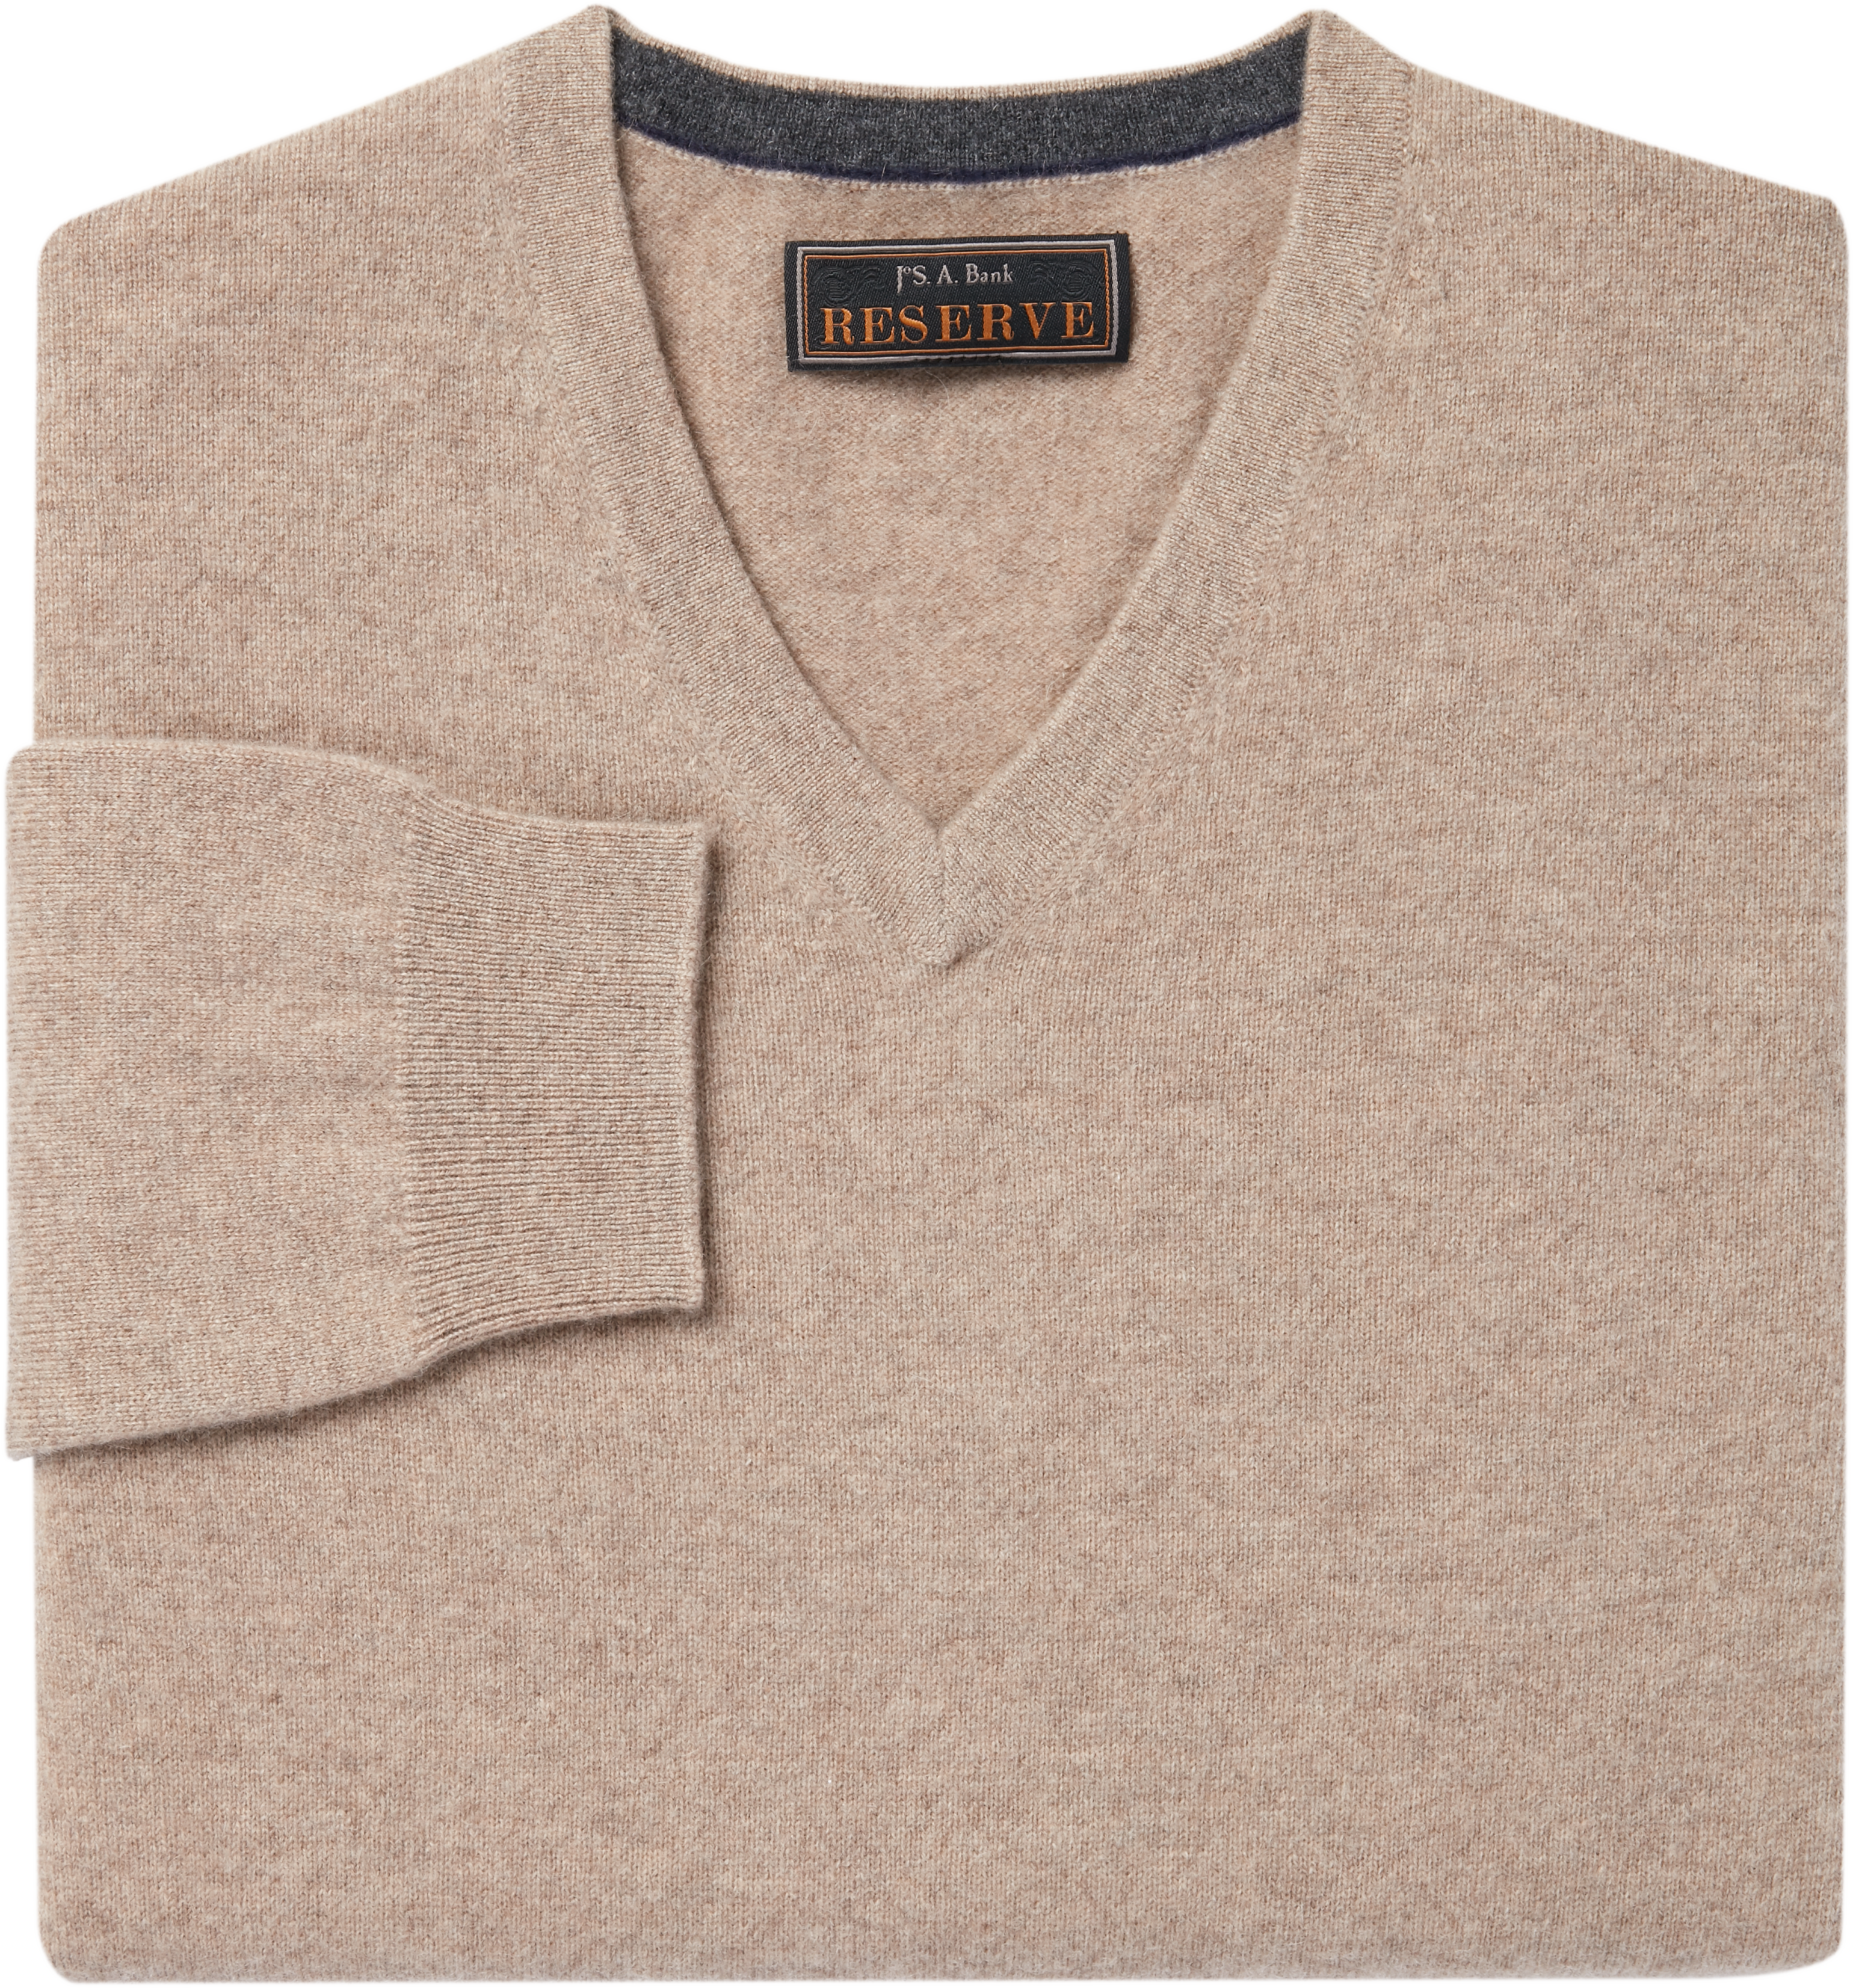 Jos. A. Bank Reserve Collection Cashmere V Neck Sweater